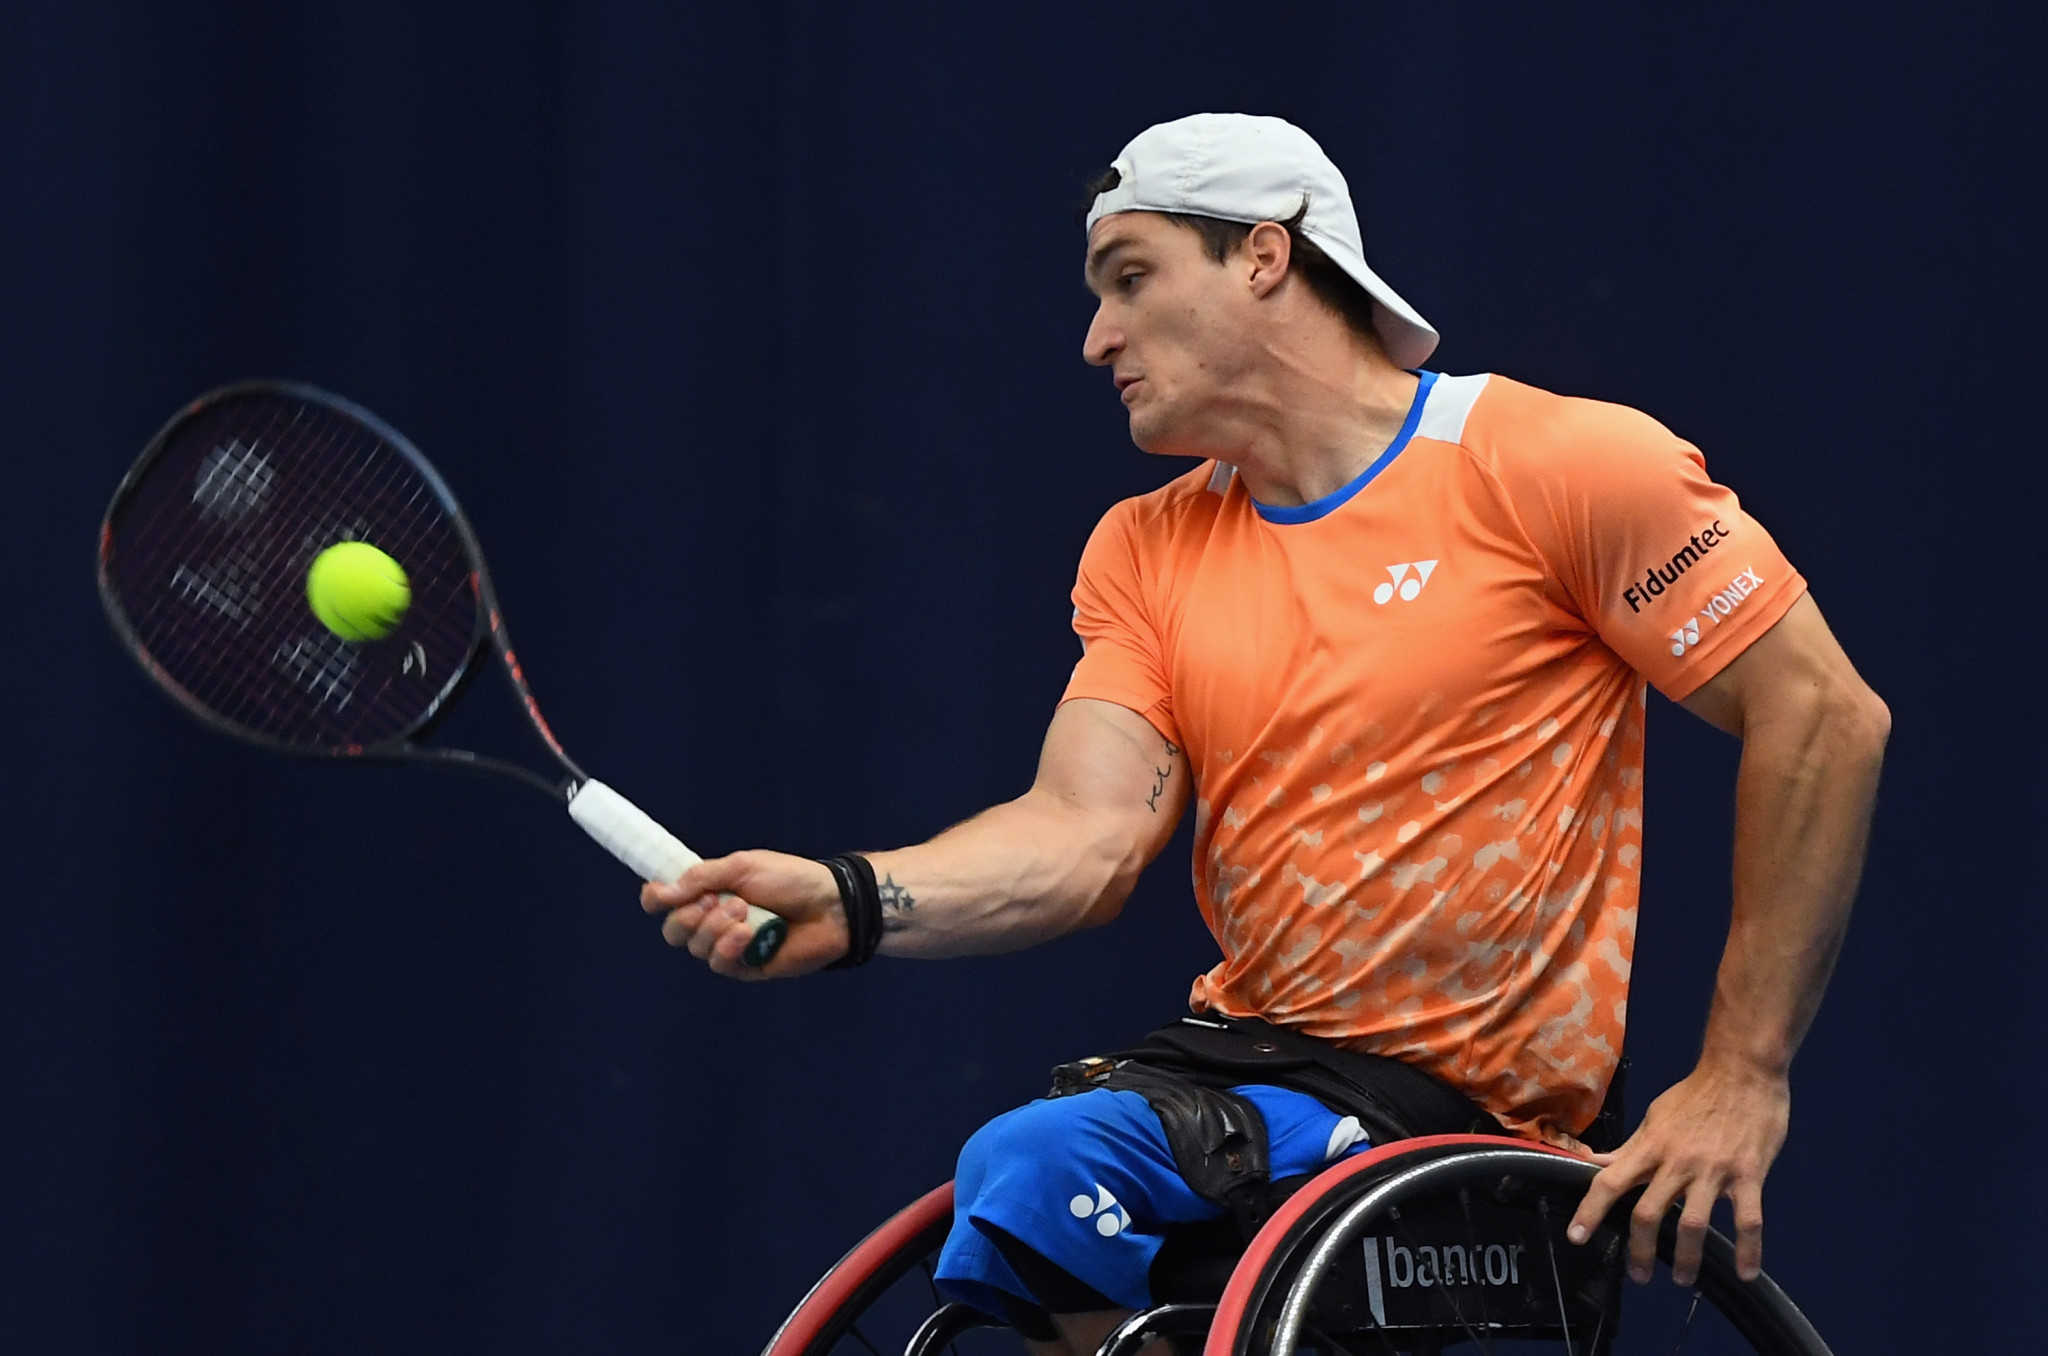 Fernandez secures second straight win at Wheelchair Tennis Masters in Orlando